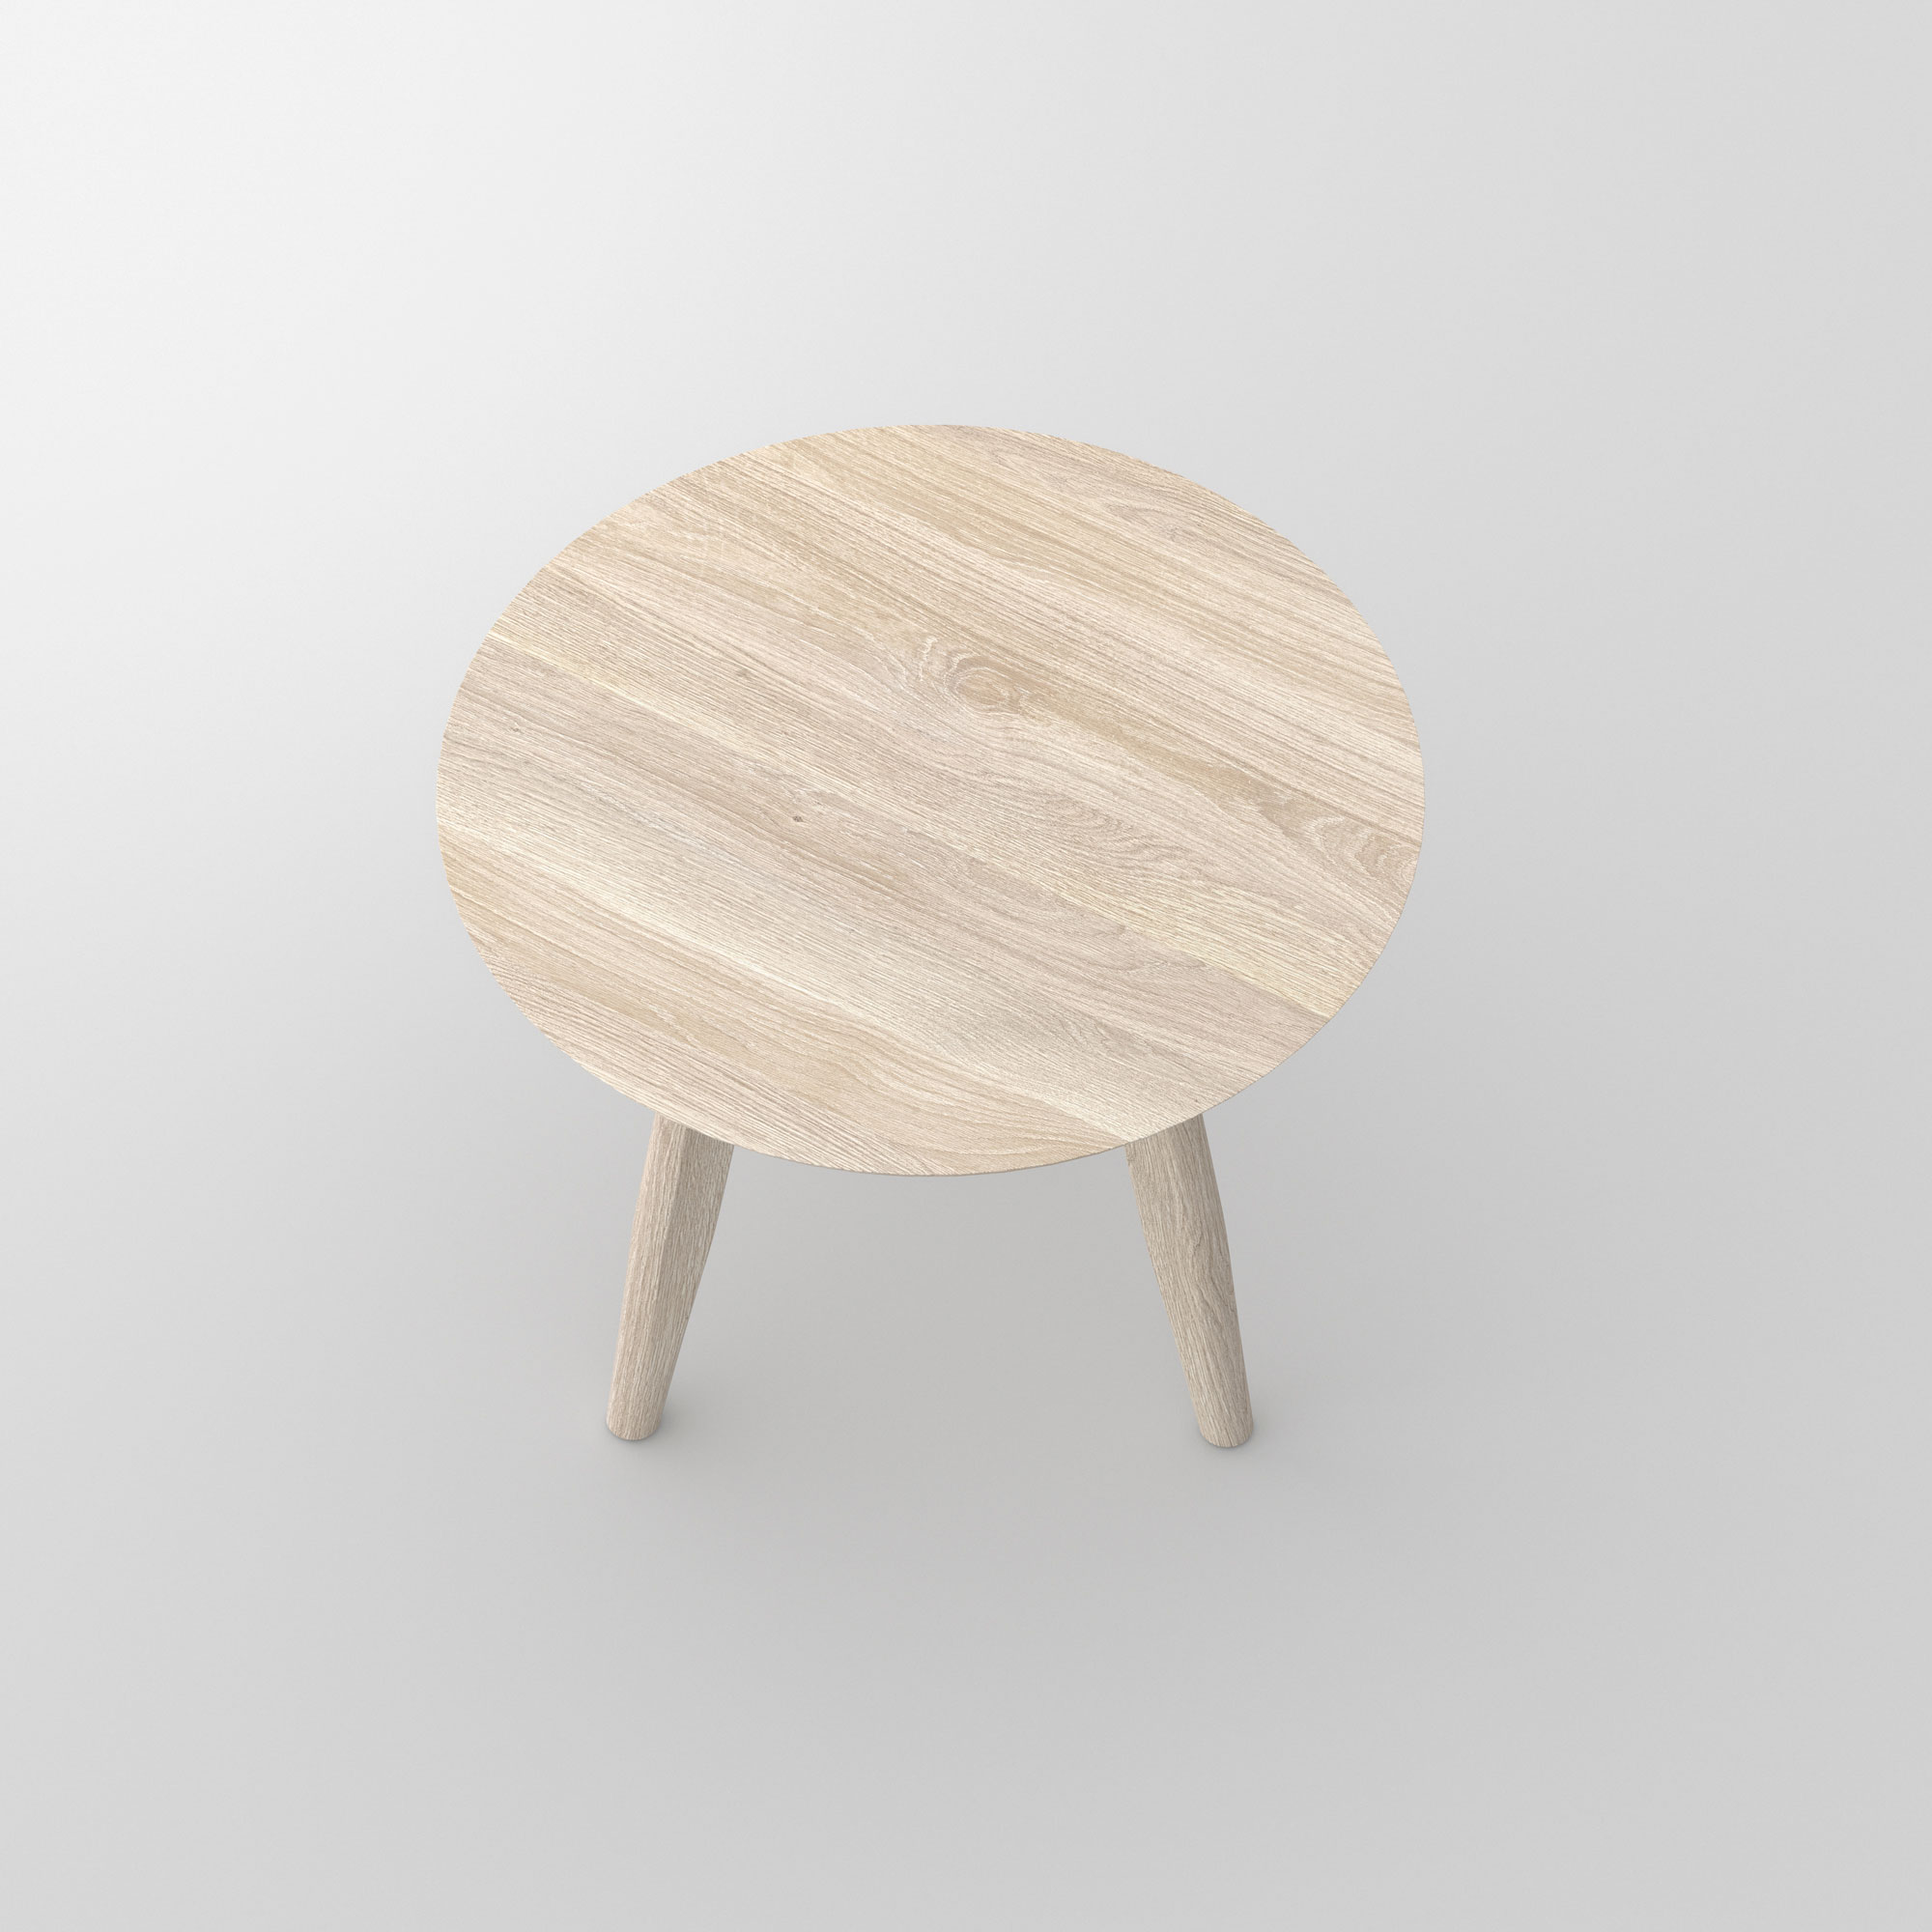 Round Night Table AETAS ROUND cam2 custom made in solid wood by vitamin design